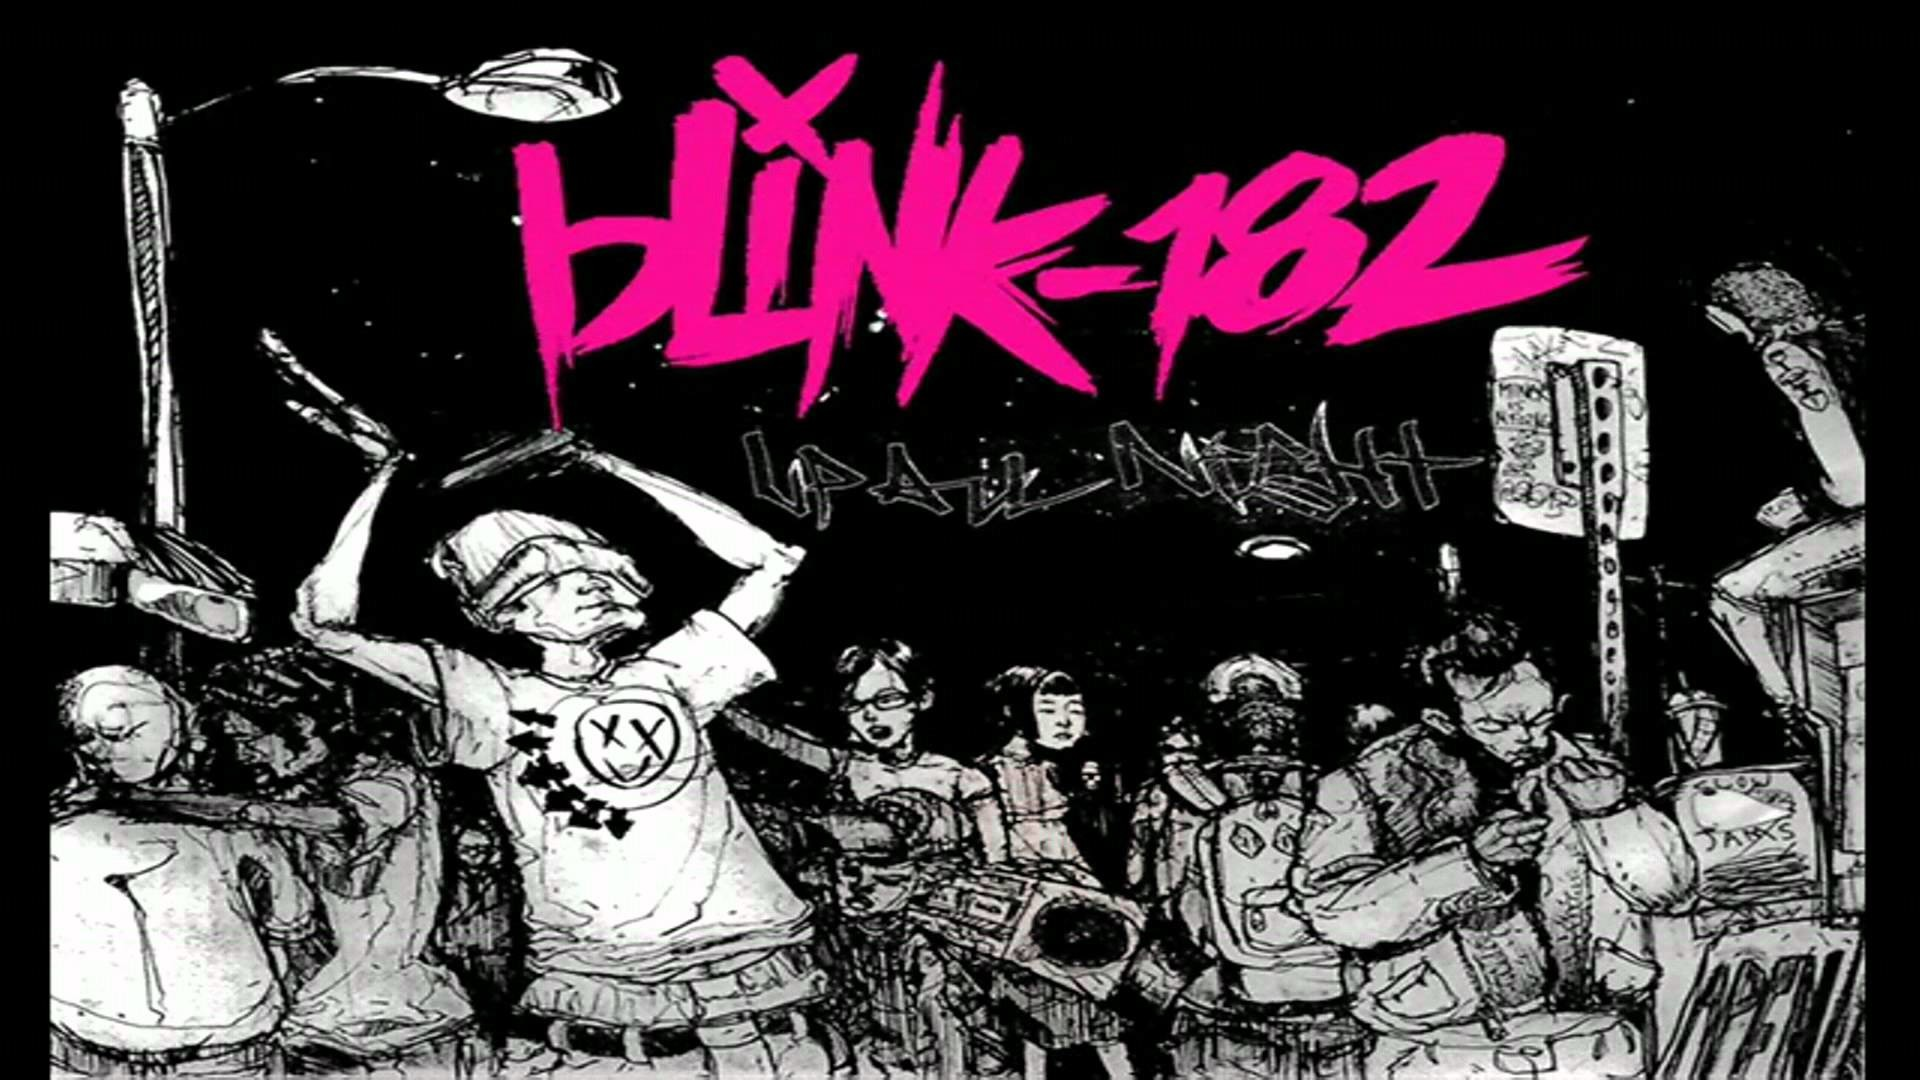 1920x1080 Blink 182 Wallpaper Neighborhoods. All ...